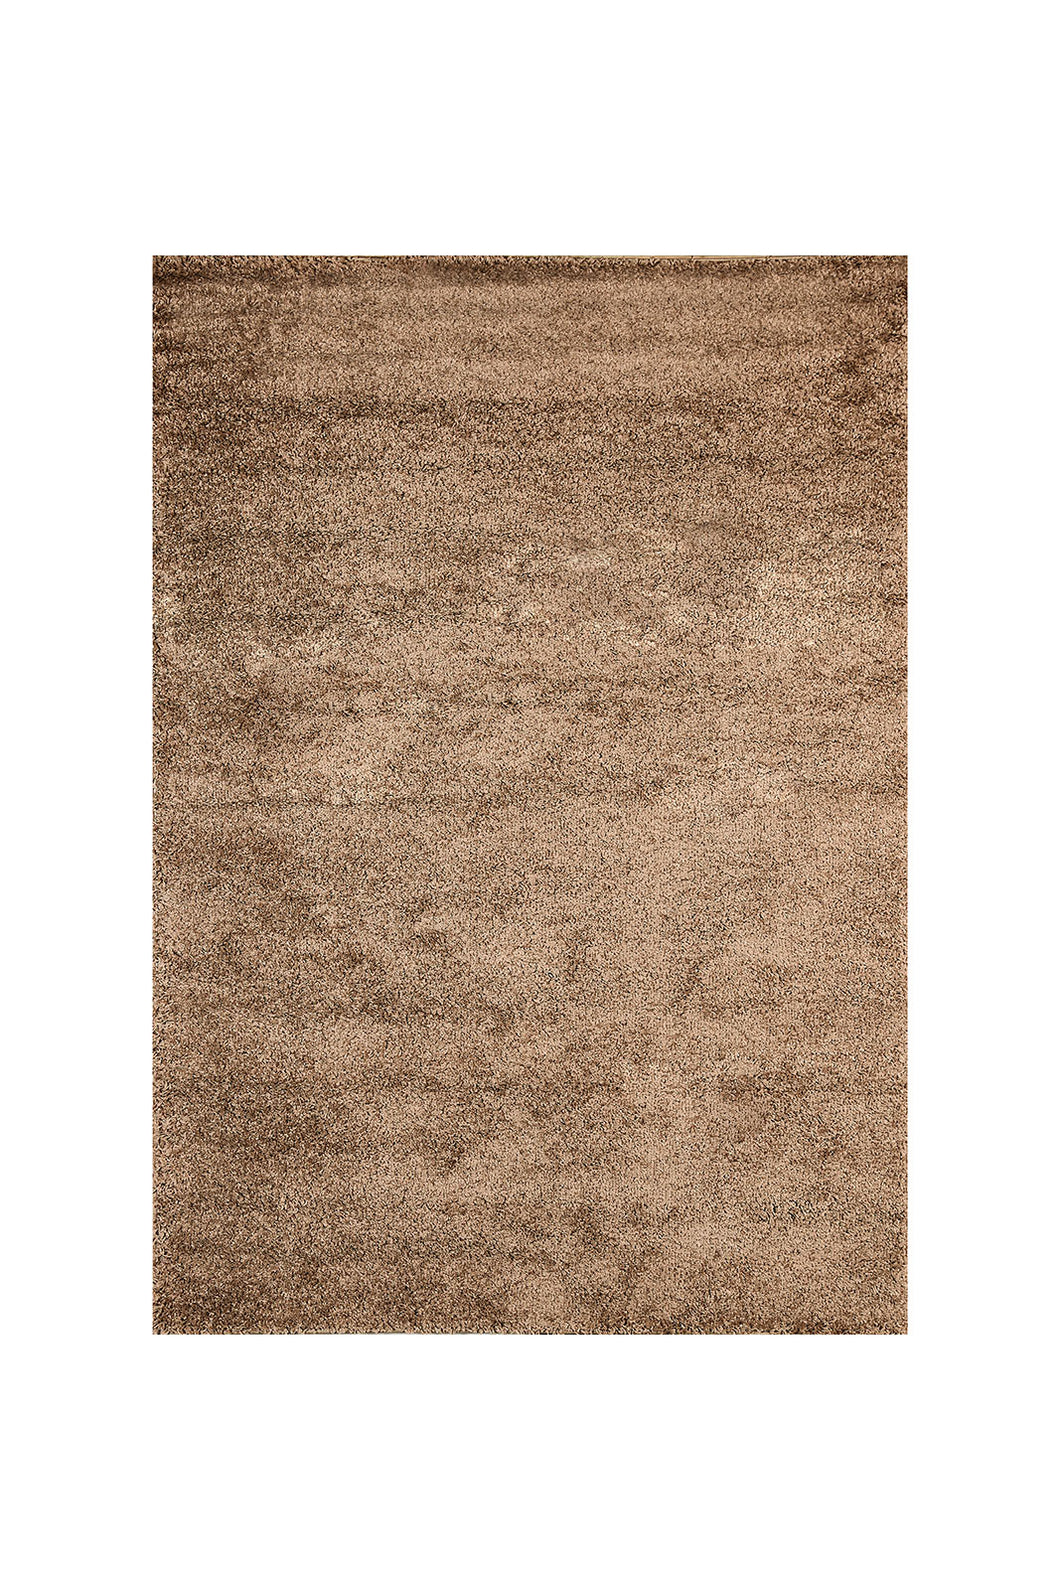 Melfort Brown 5' X 8' Area Rug